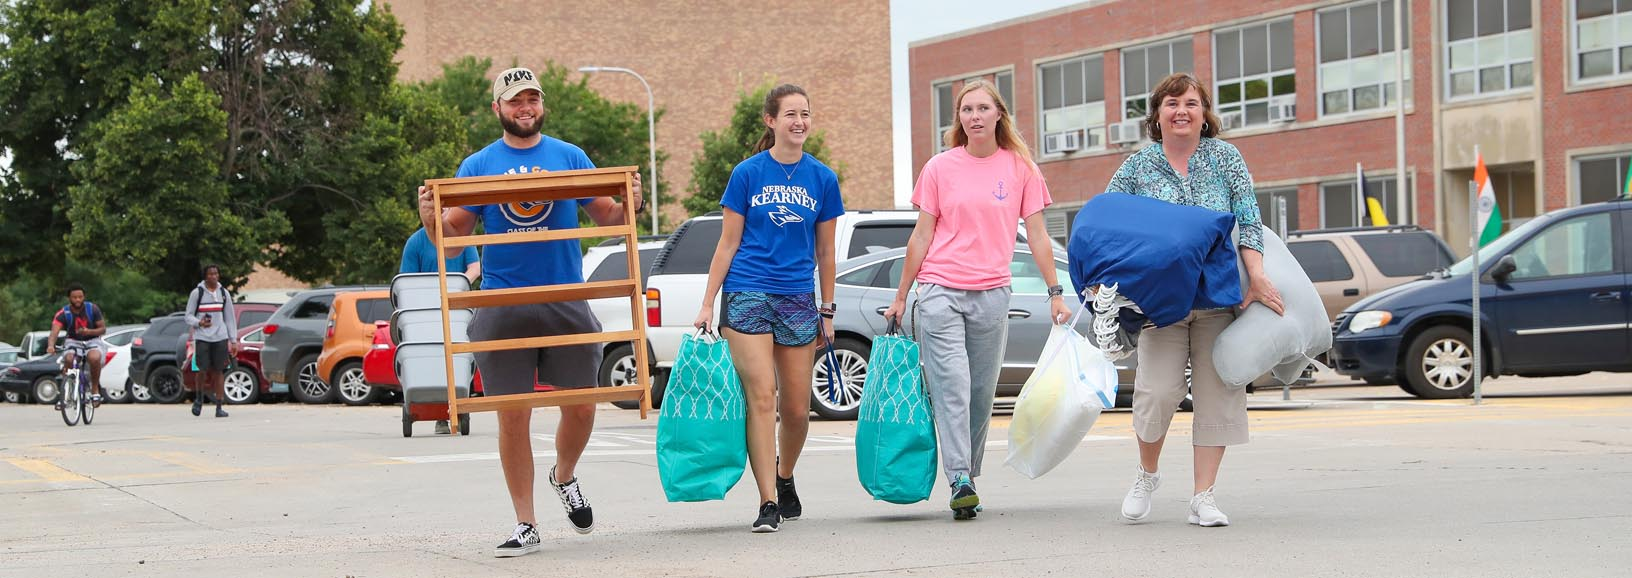 """From left, UNK students Alex Duncan of Gering and Nicole Kent of Benkelman help Sydney Kerr of Hastings and her mother Stacy on Wednesday as Kerr moves into Men's Hall on the UNK campus. Upper-level students from the Kearney Health Opportunities Program (KHOP) volunteered to assist new members with the move-in process. """"This helps us meet some of the new students and make sure they feel welcome,"""" Duncan said. """"KHOP is a group effort. We want them to know they're part of a great team."""" (Photo by Corbey R. Dorsey, UNK Communications)"""